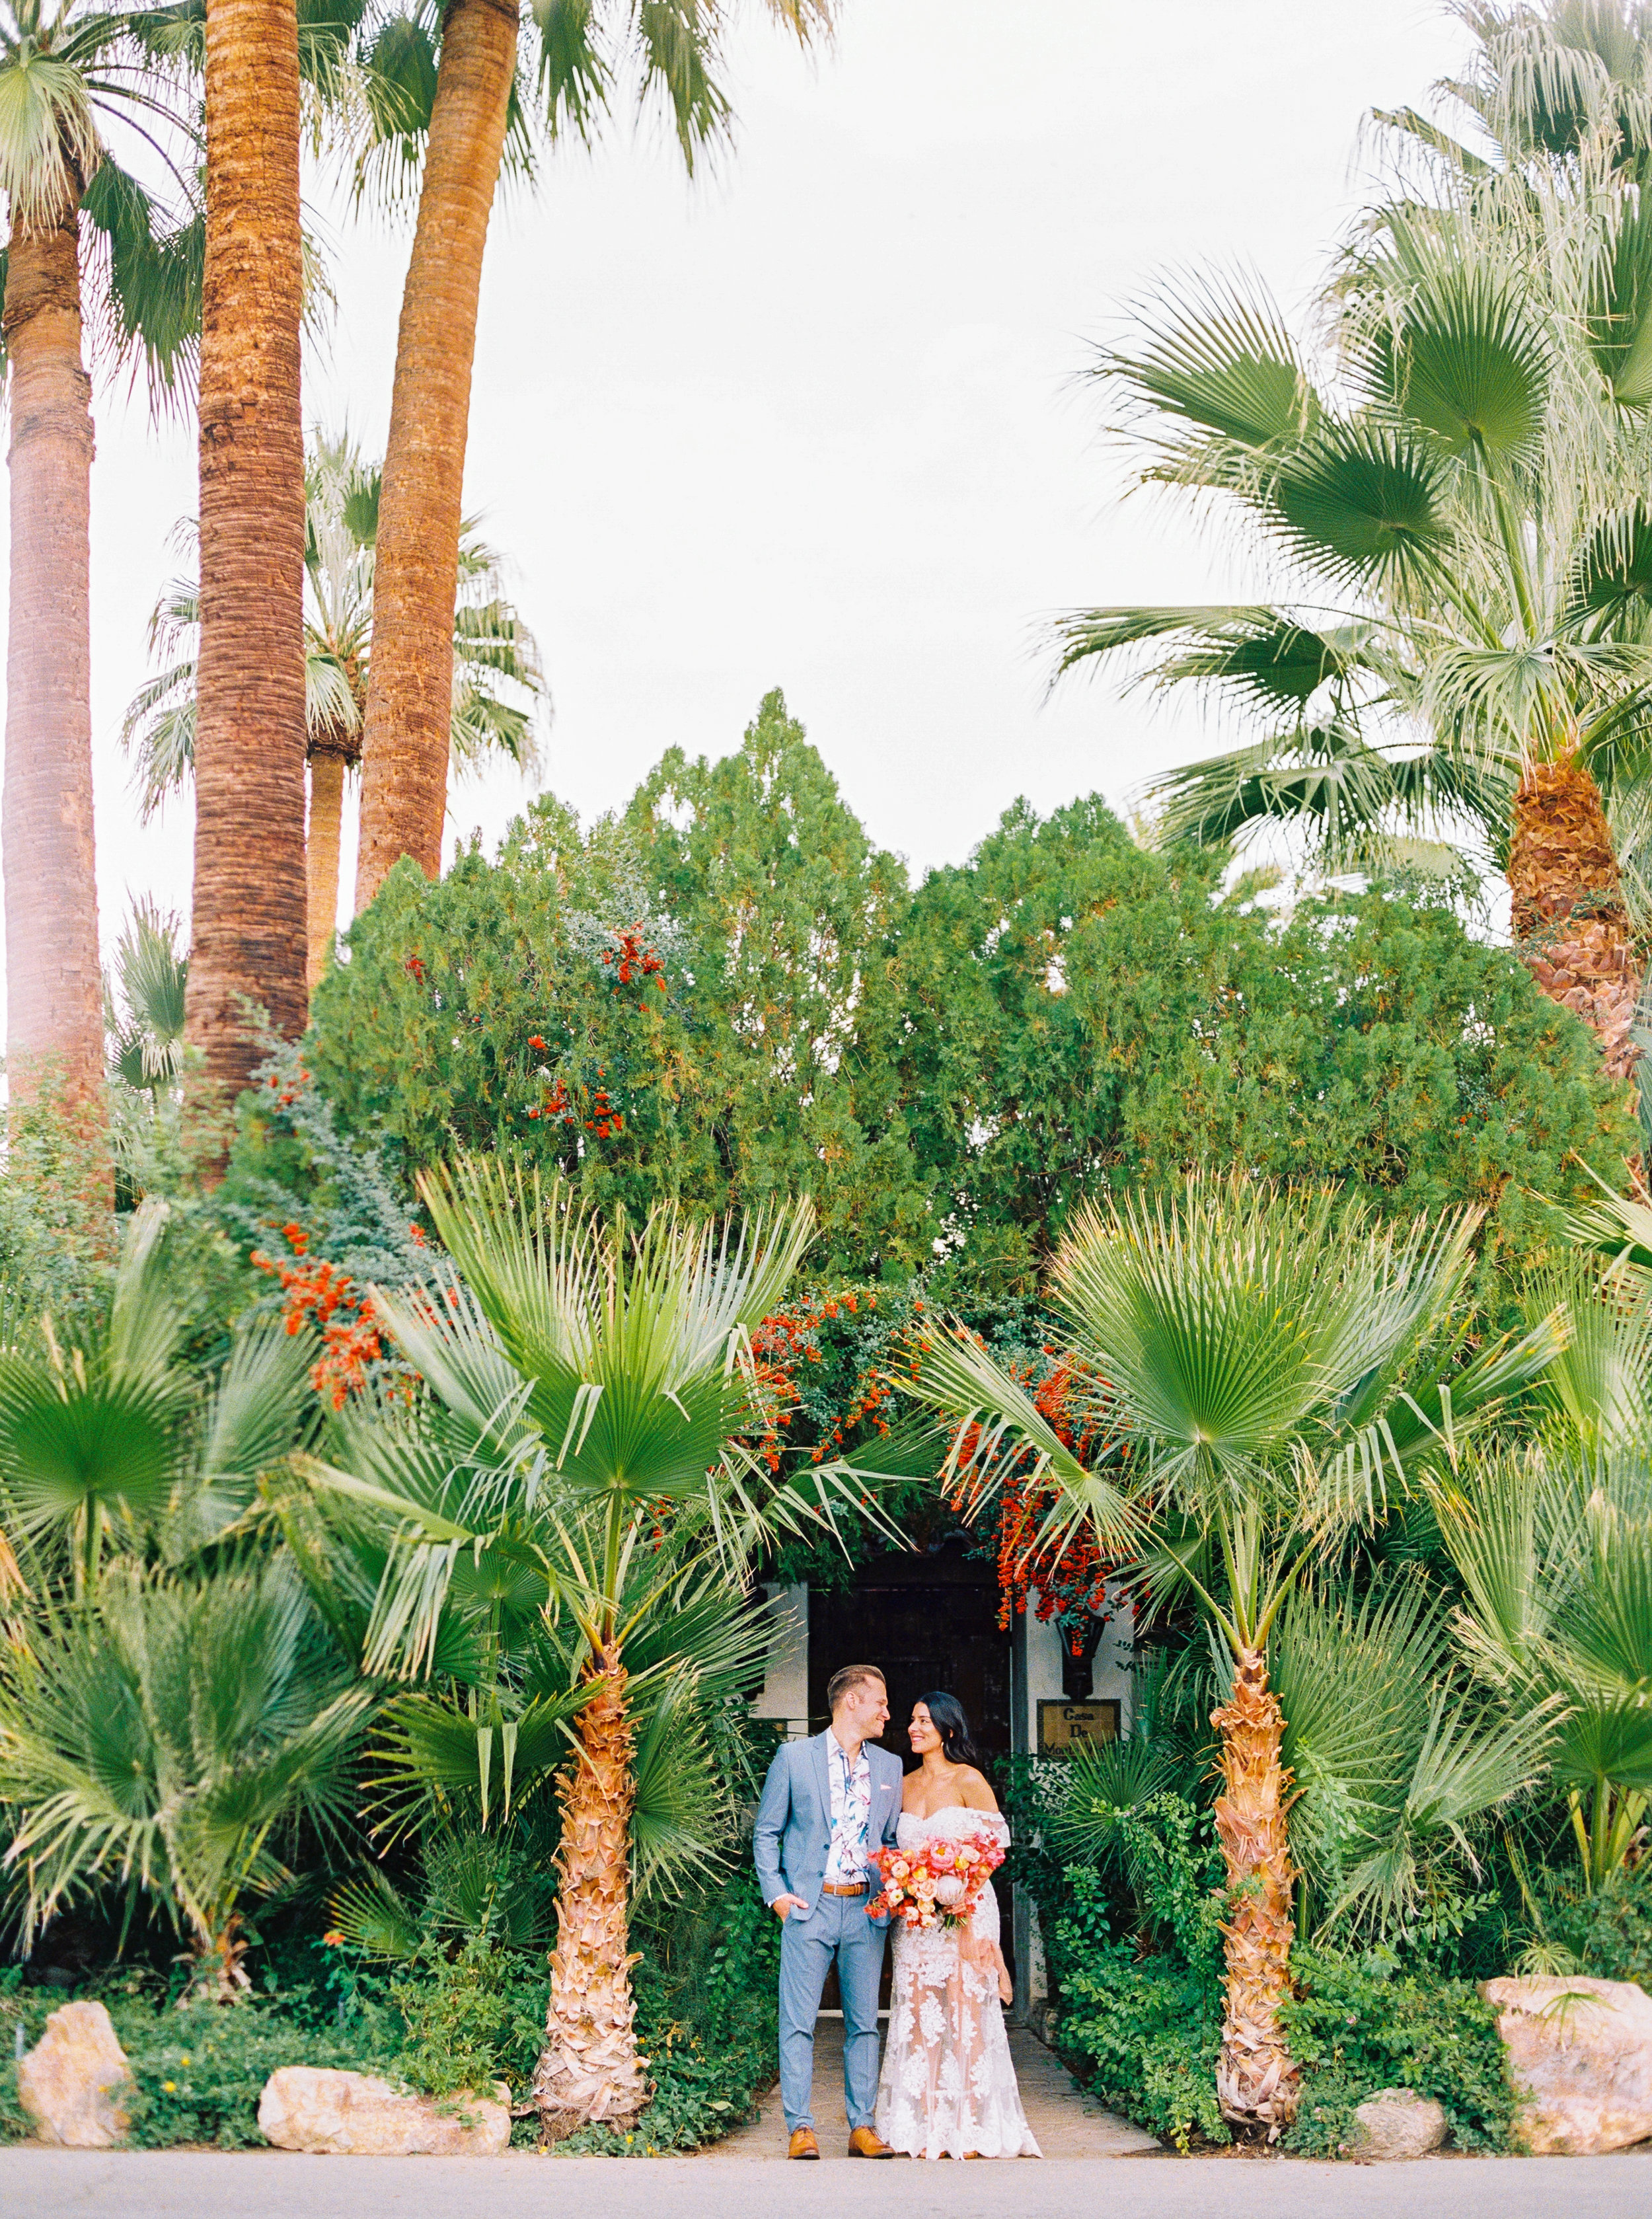 PALM SPRINGS WEDDING BOUGAINVILLEA WEDDING